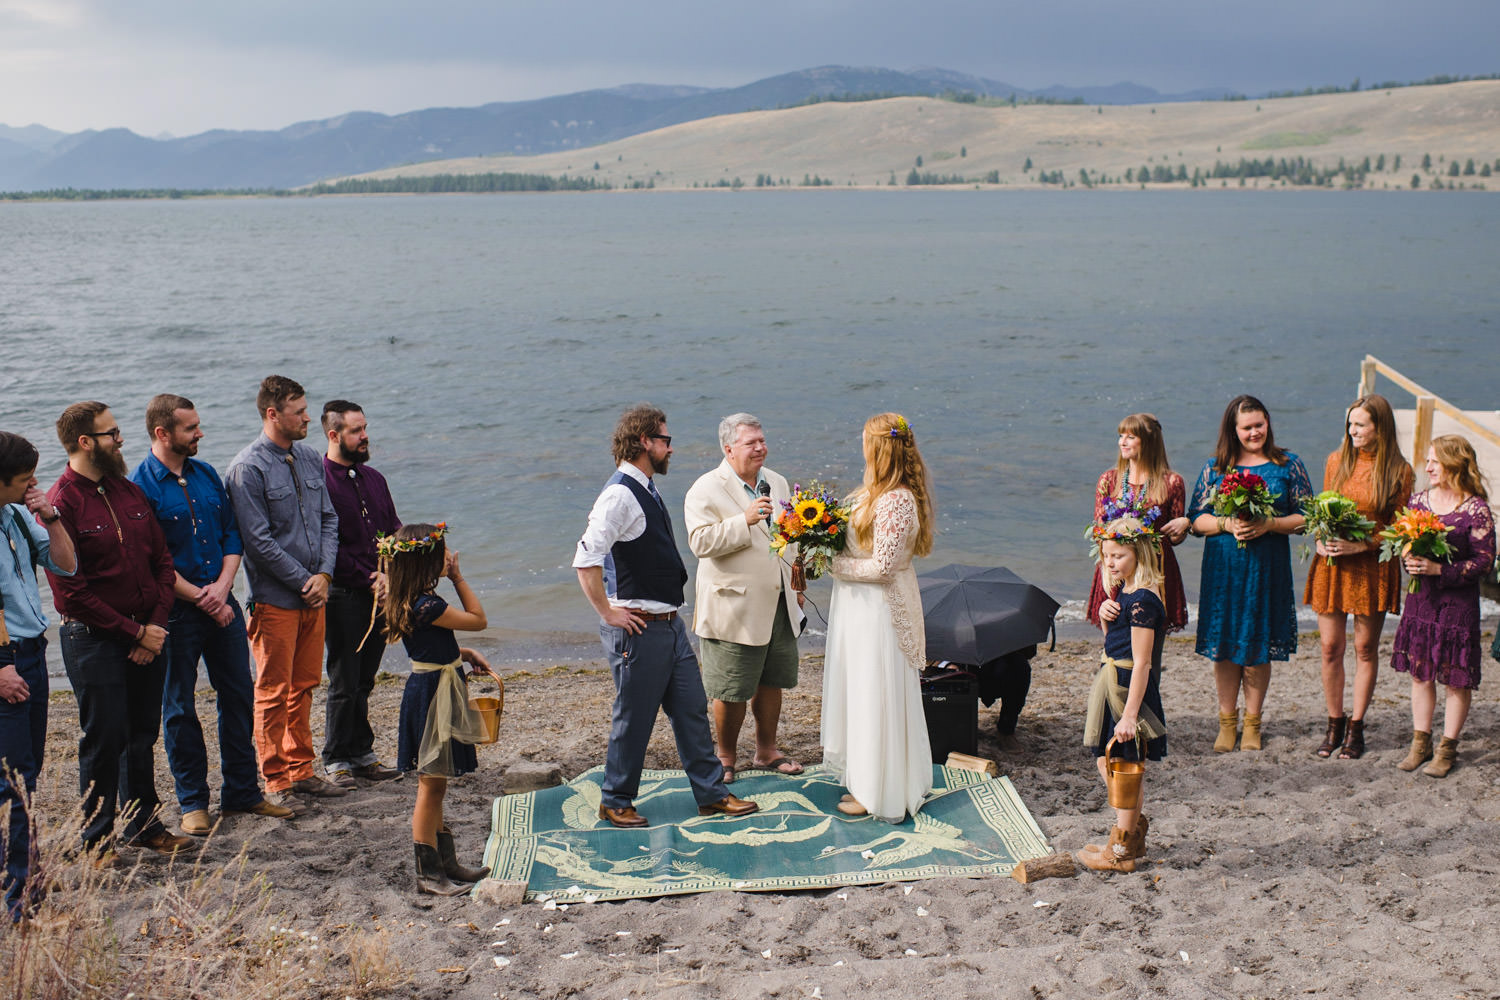 West Yellowstone Wedding officiant leading the ceremony photo